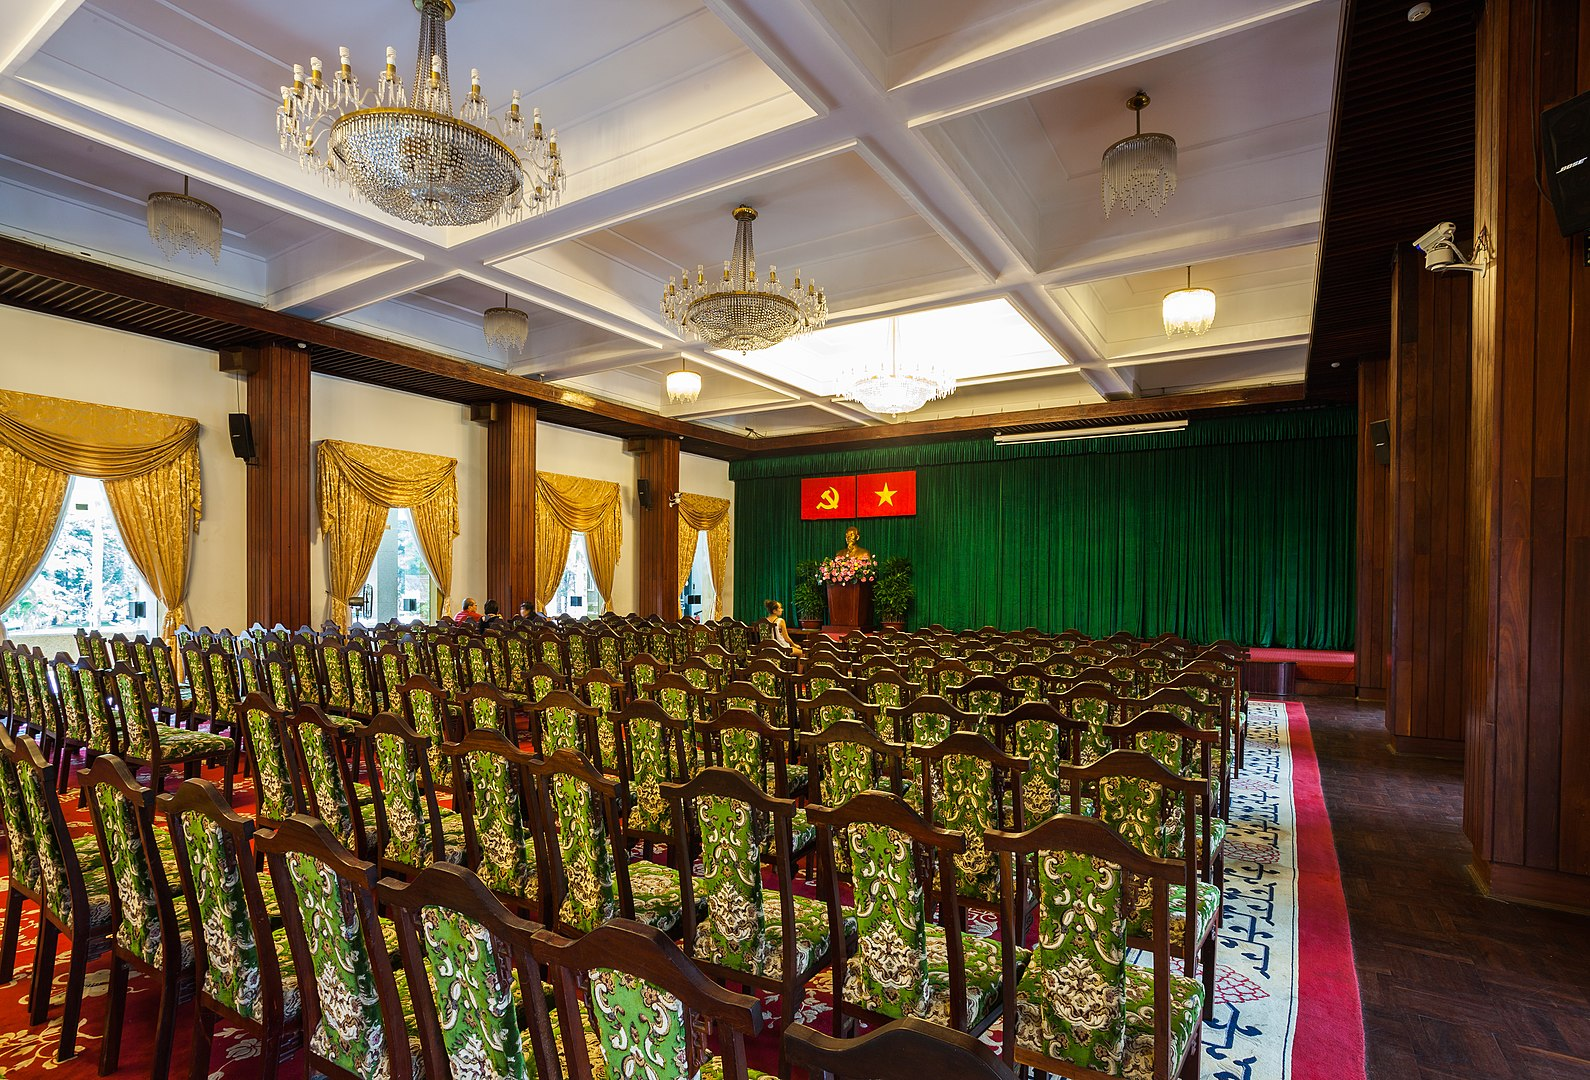 Image of a conference room in the Reunification Palace in Ho Chi Minh City, Vietnam